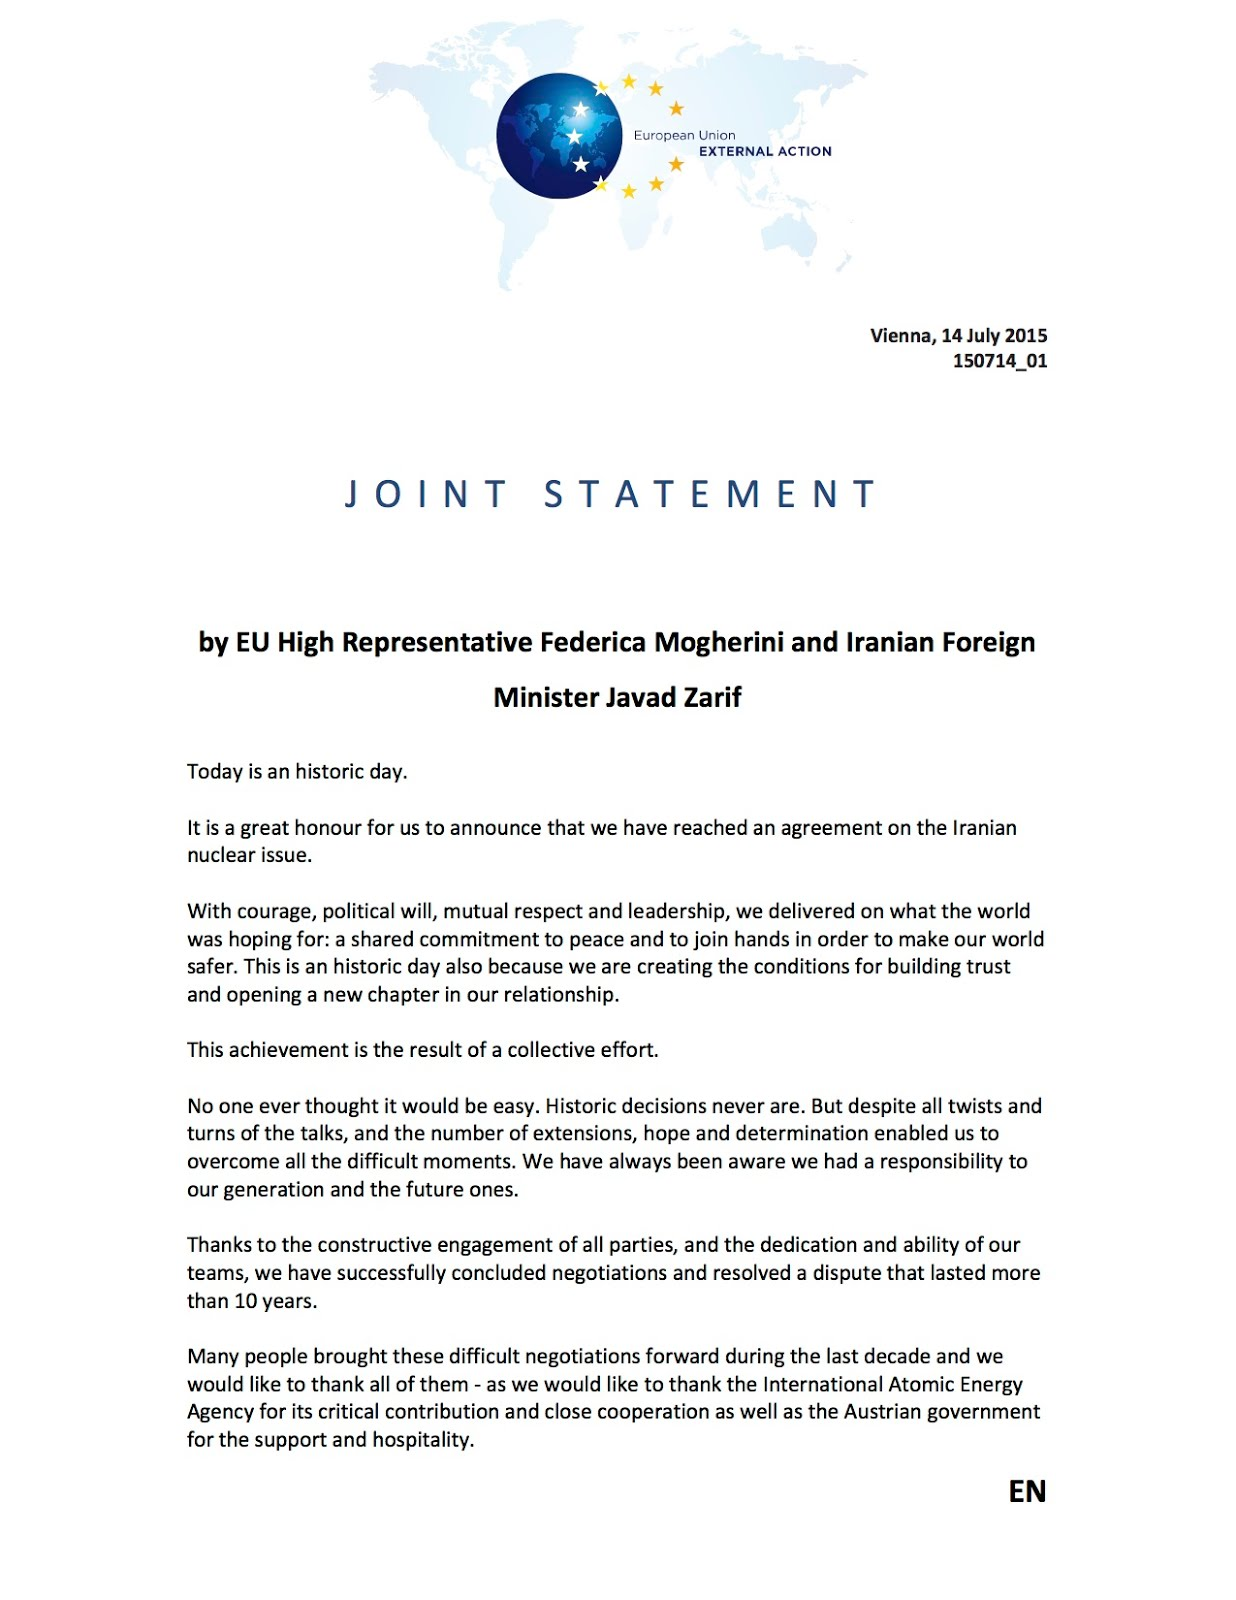 Joint Statement